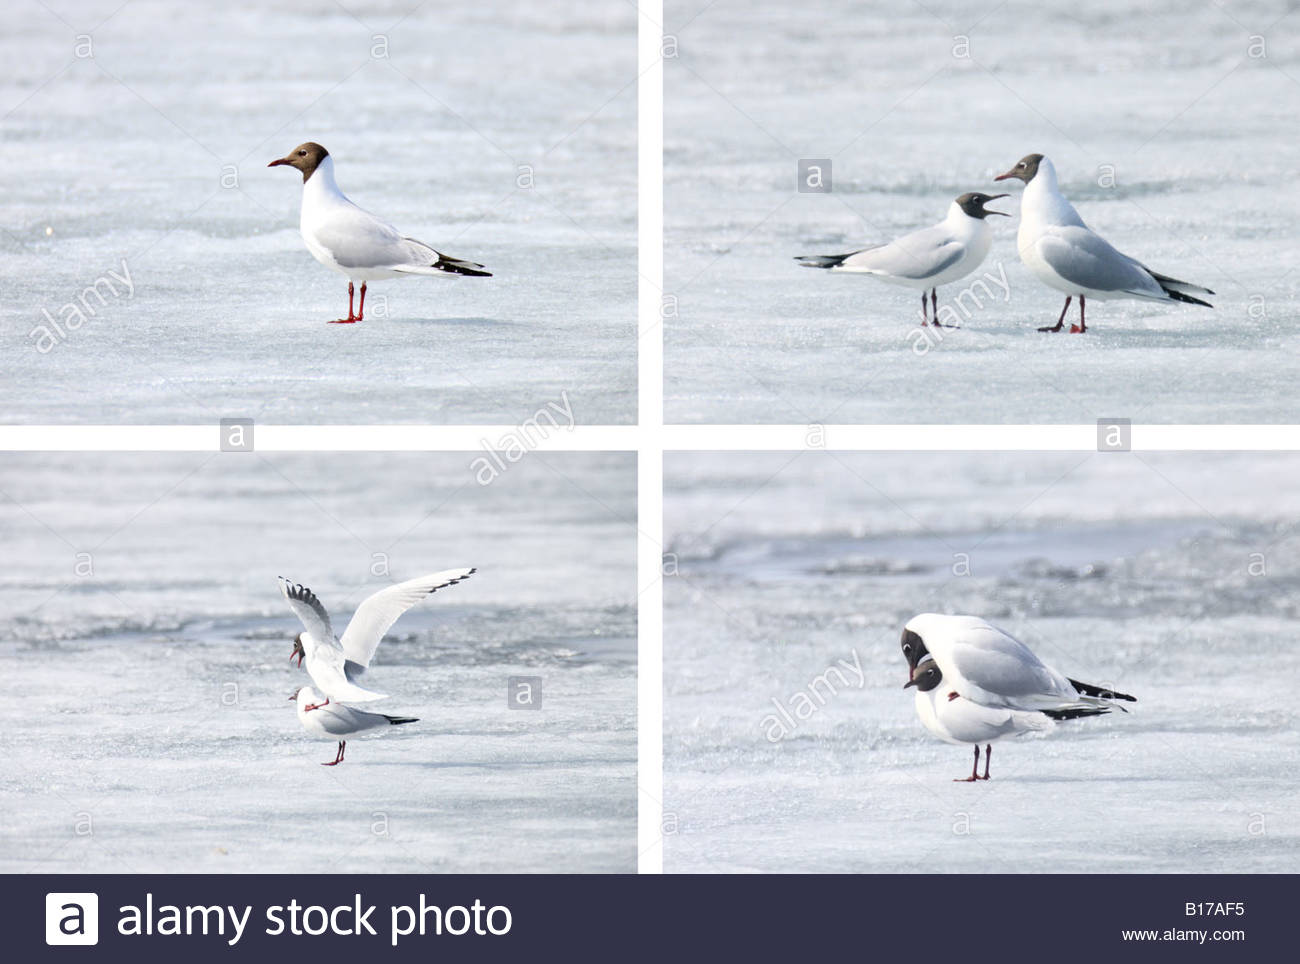 Two black headed gulls (Larus ridibundus) mate on the frozen Lake Mývatn in northern Iceland. - Stock Image